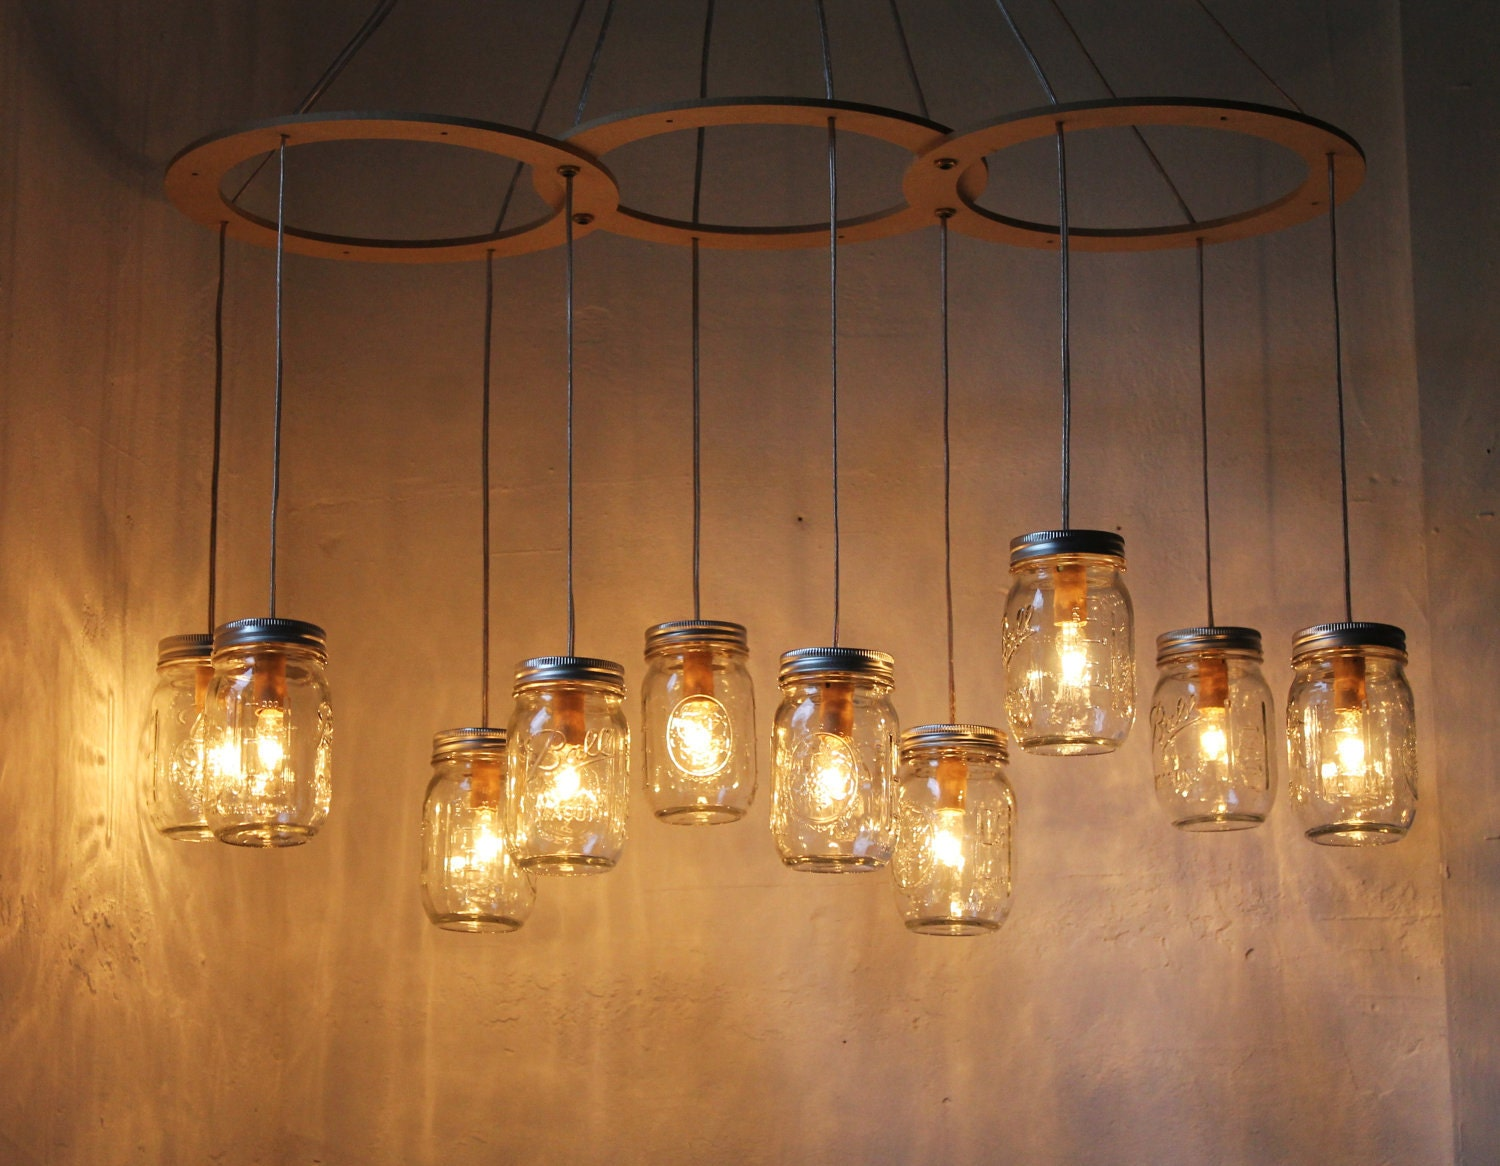 Mason Jar Chandelier Lighting Fixture Large Rustic